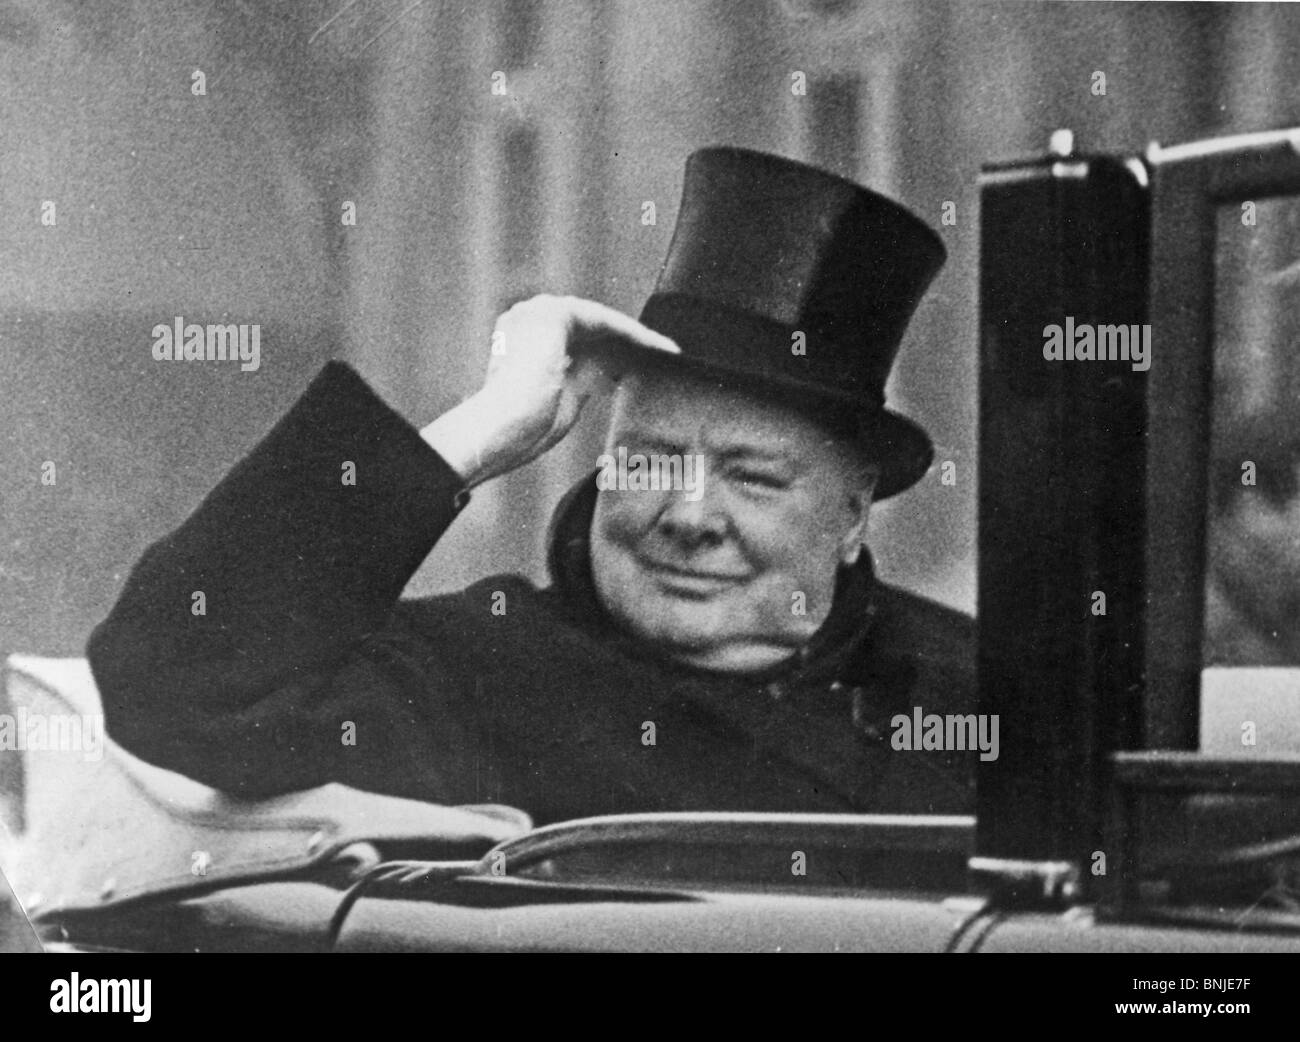 SIR WINSTON CHURCHILL about 1945 - Stock Image